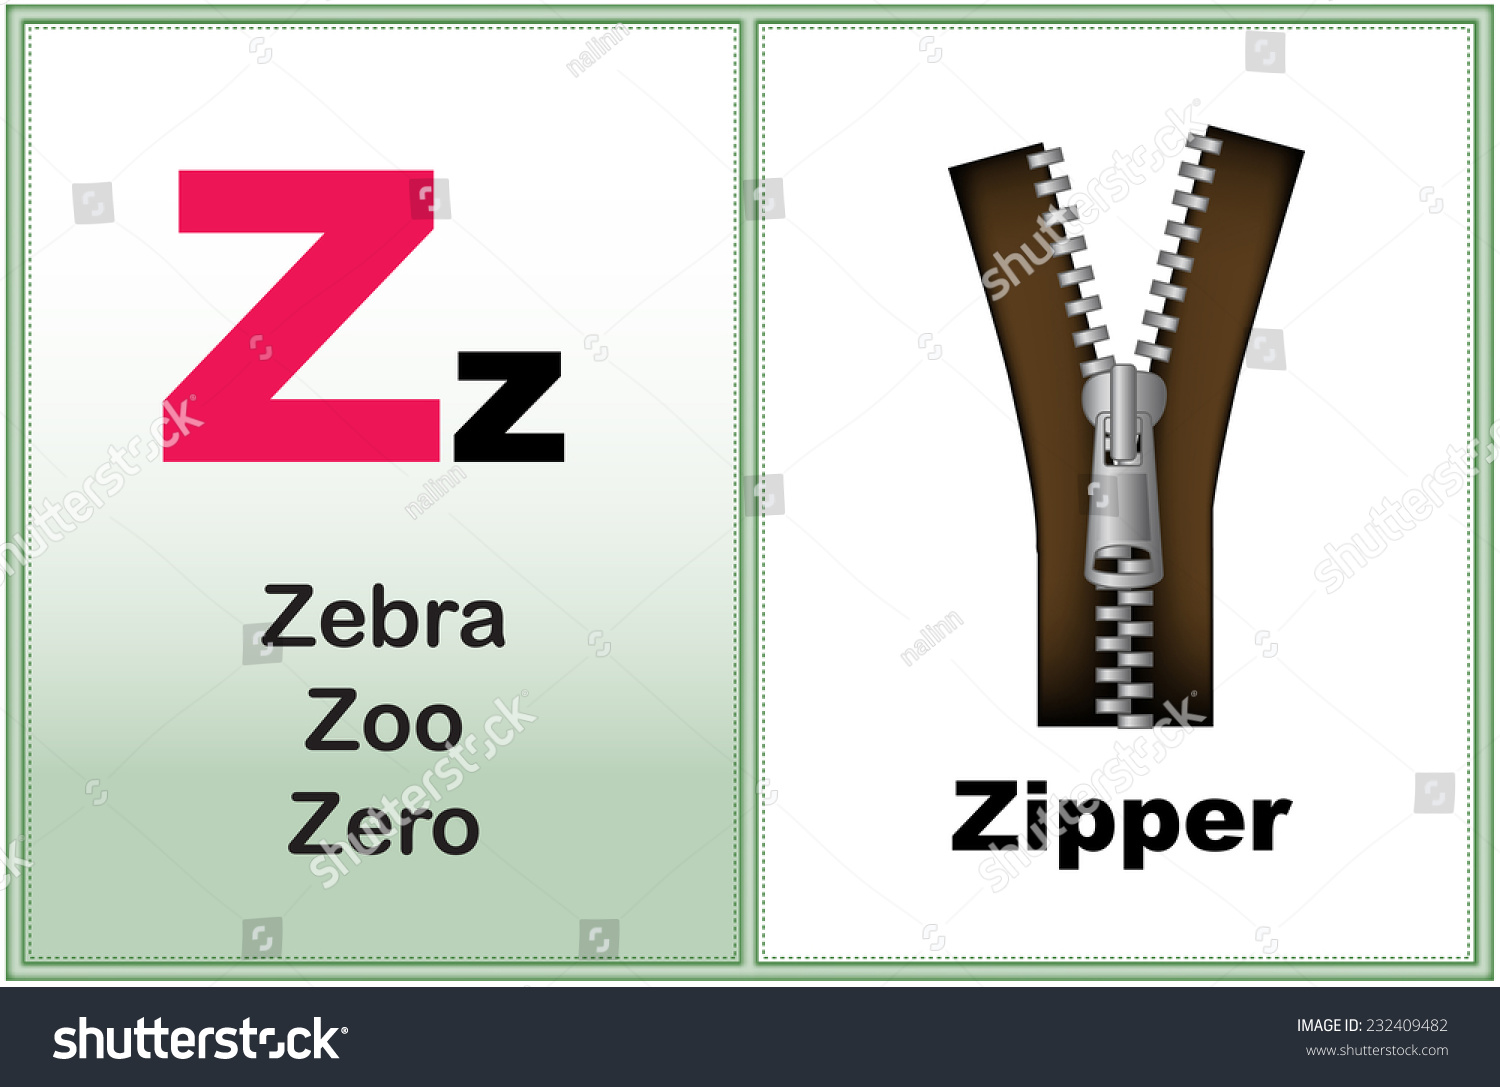 Maxresdefault additionally Very Cute Alphabet Z Letter Zebra Zero Zigzag Zucchini Zipe Design Colorful Style besides C F D Bcc C A likewise Letter Z besides I. on preschool letter z